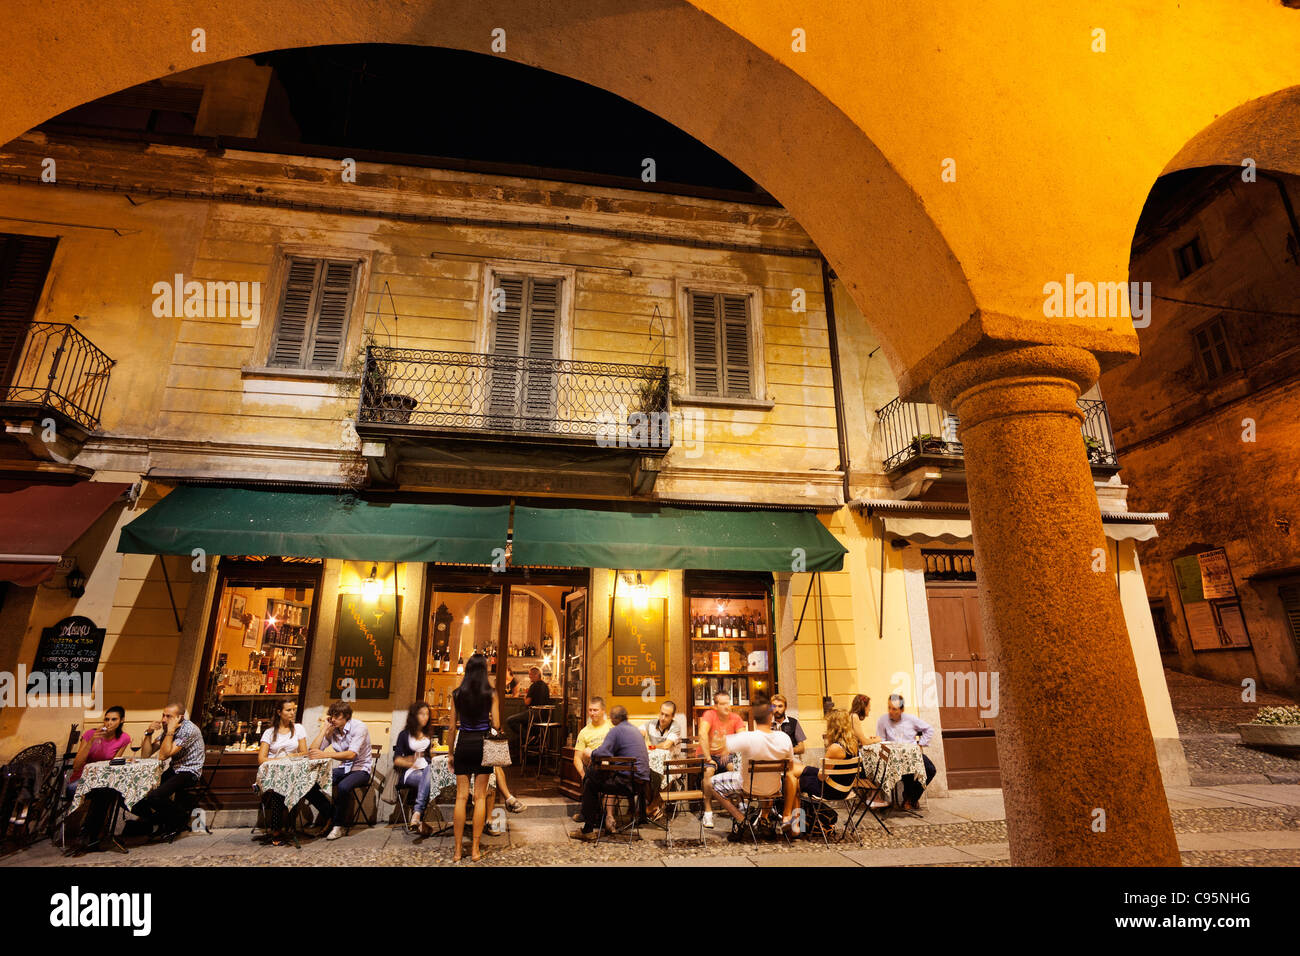 Italy, Piedmont, Lake Orta, Orta Town, Cafes in the Piazza Mario Motta - Stock Image